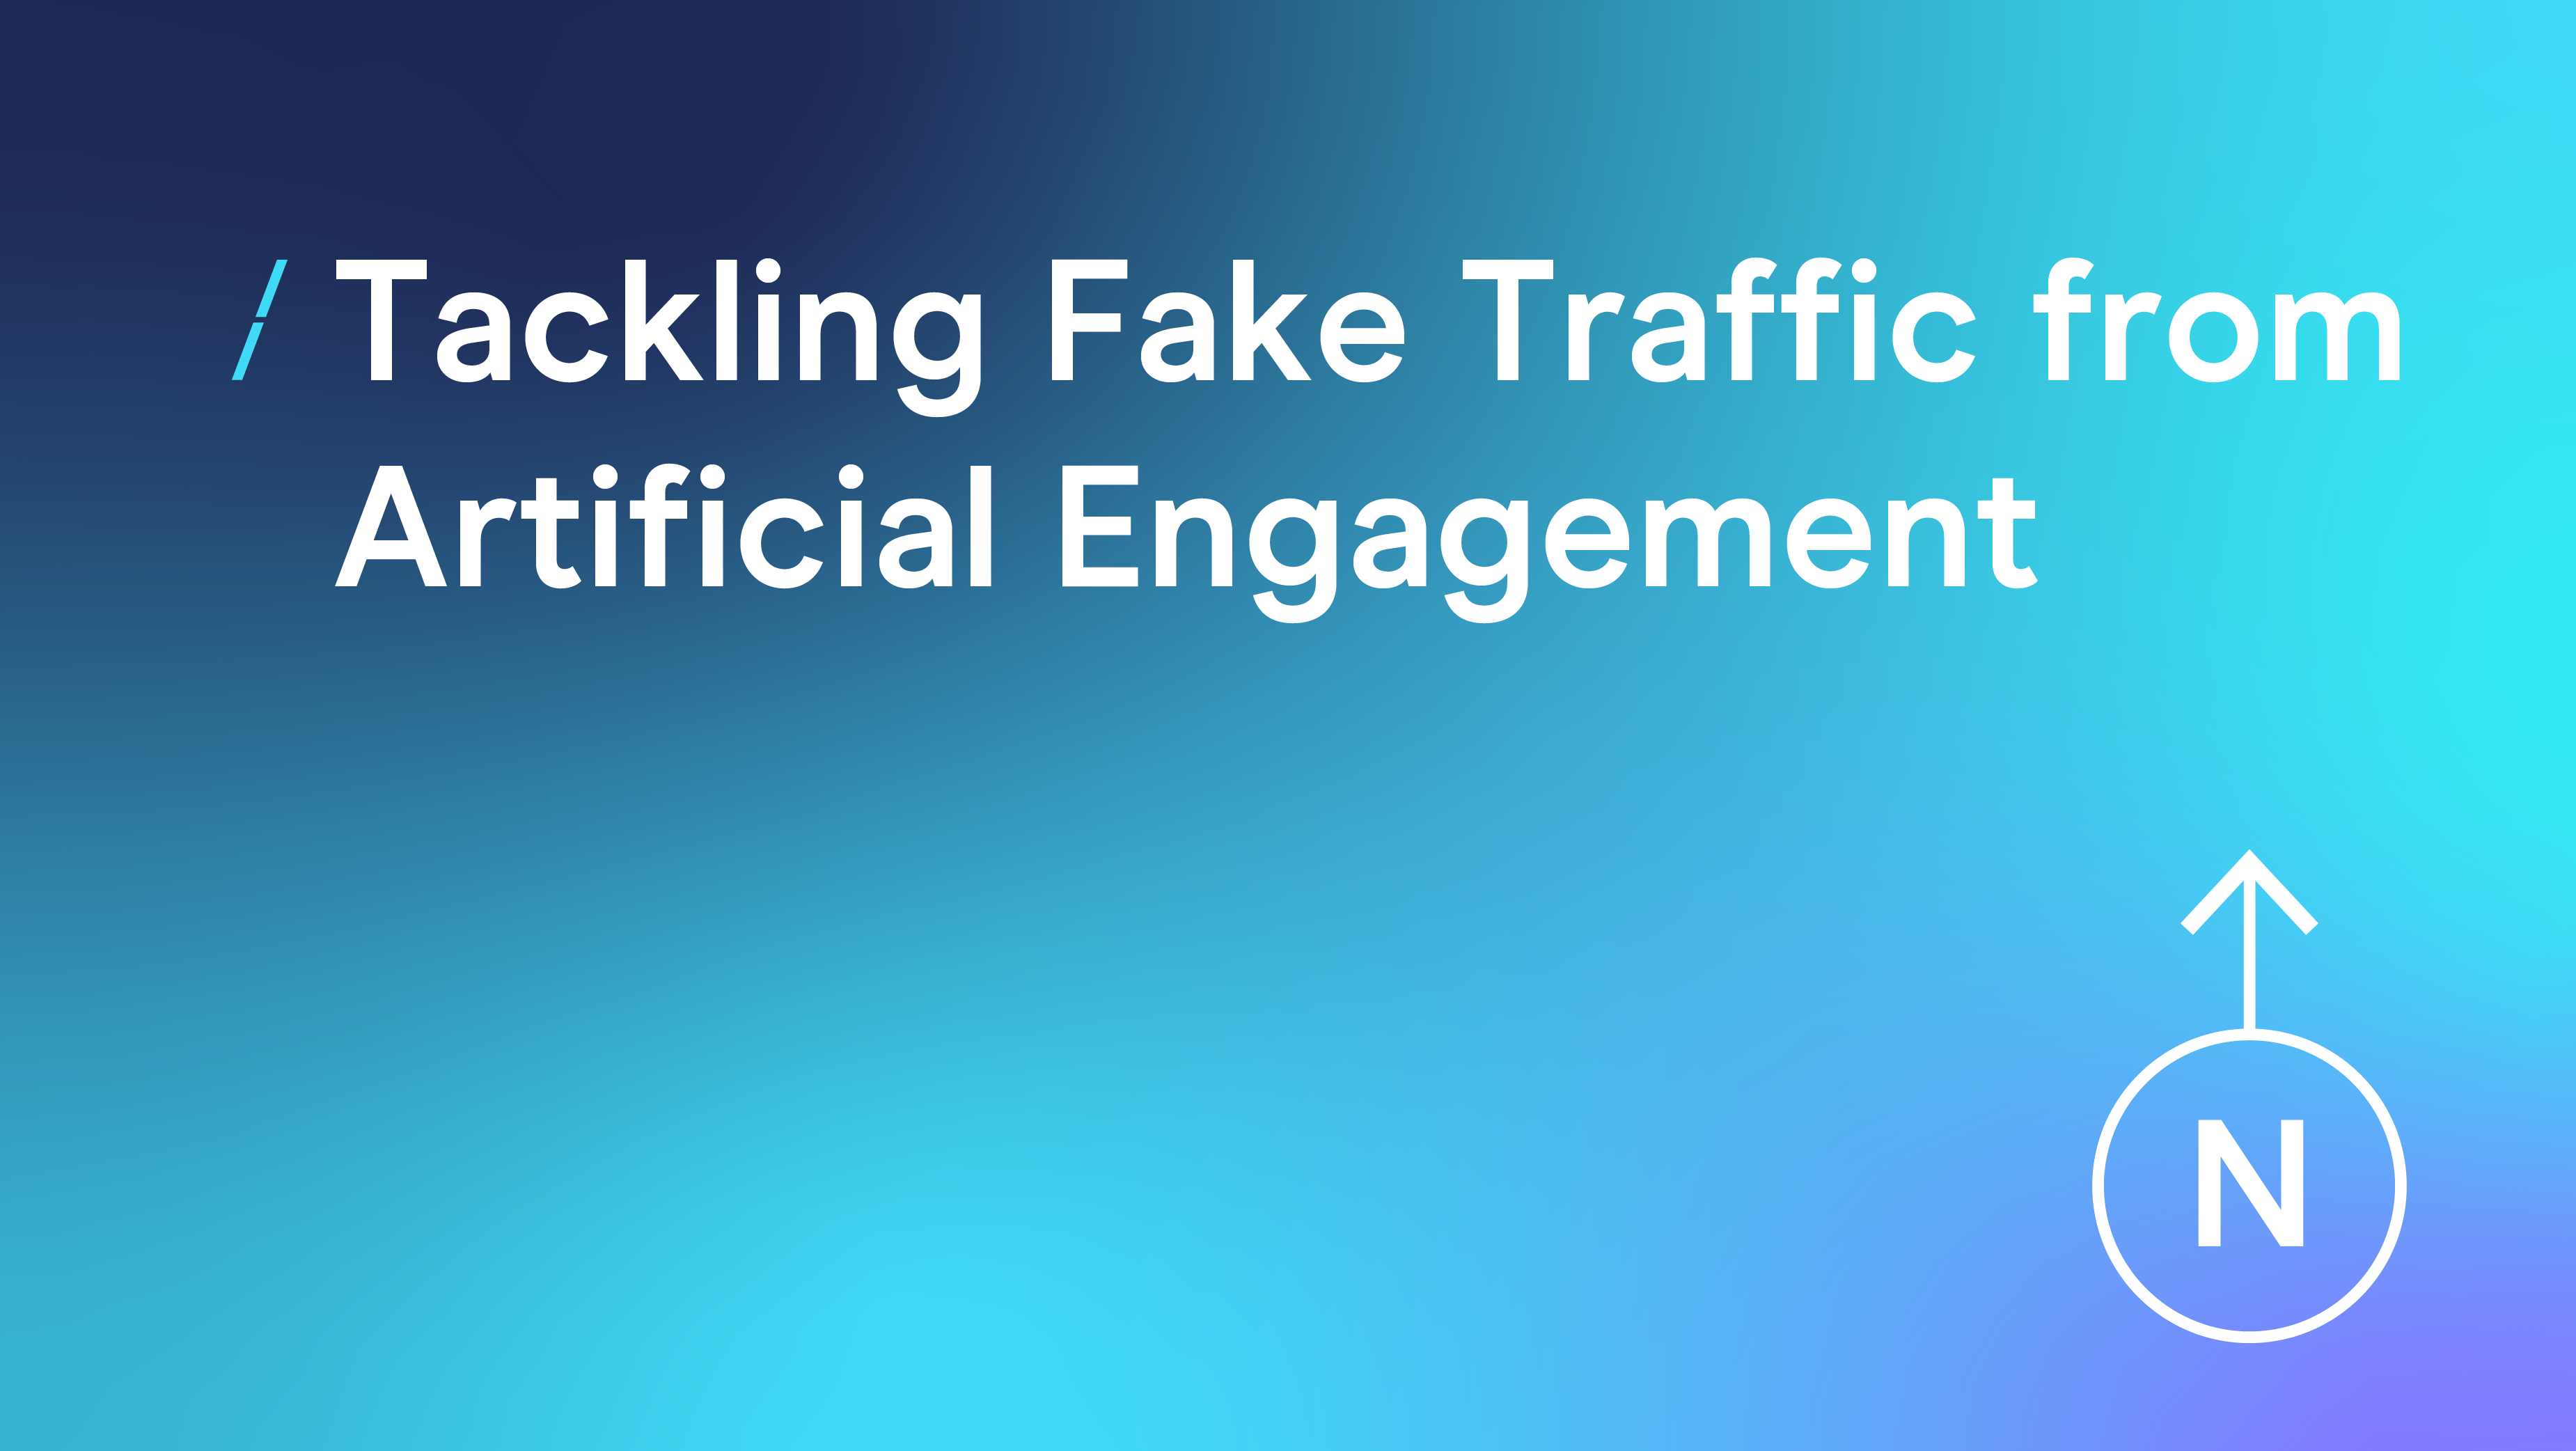 TacklingFakeTrafficFromArtificalEngagement_Customer Data Council copie 2.png